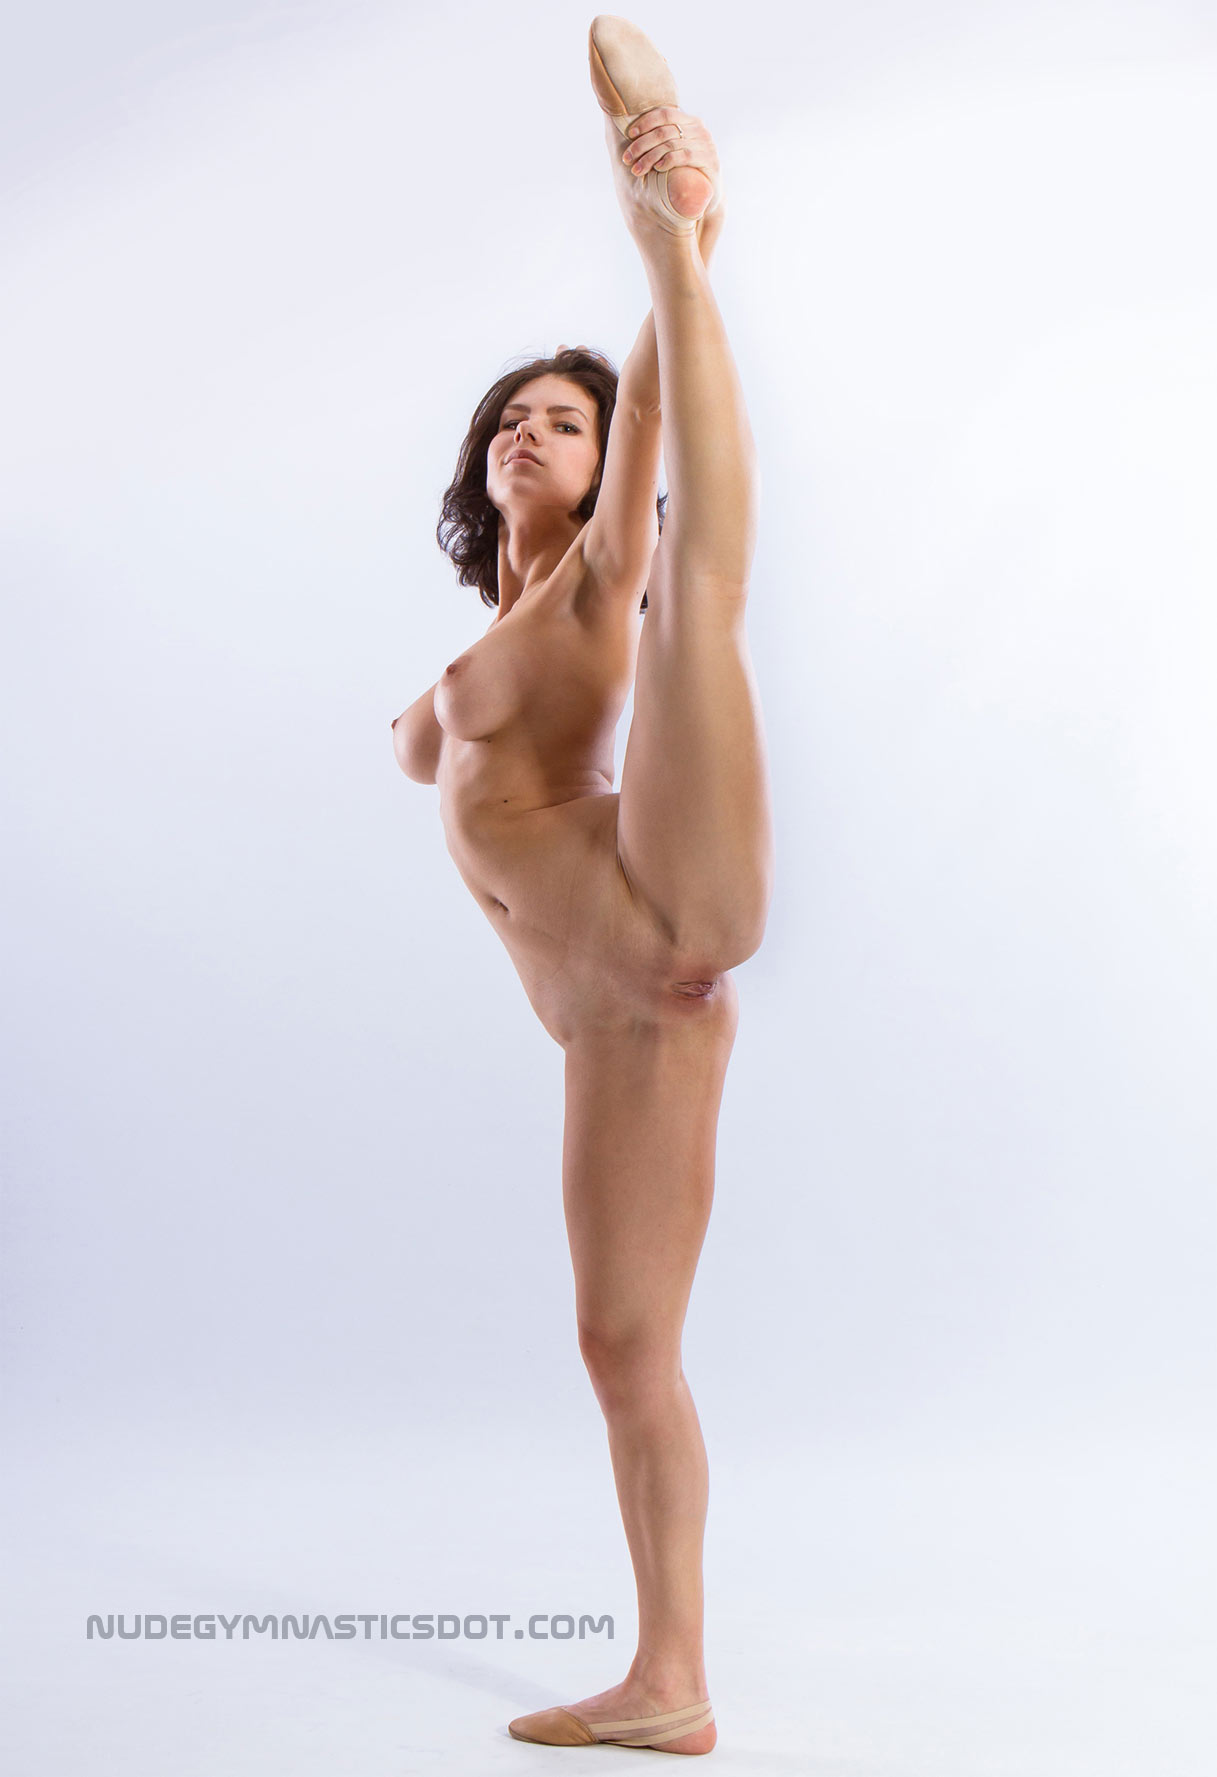 Nude Male Gymnasts  Hot Girl Hd Wallpaper-1035